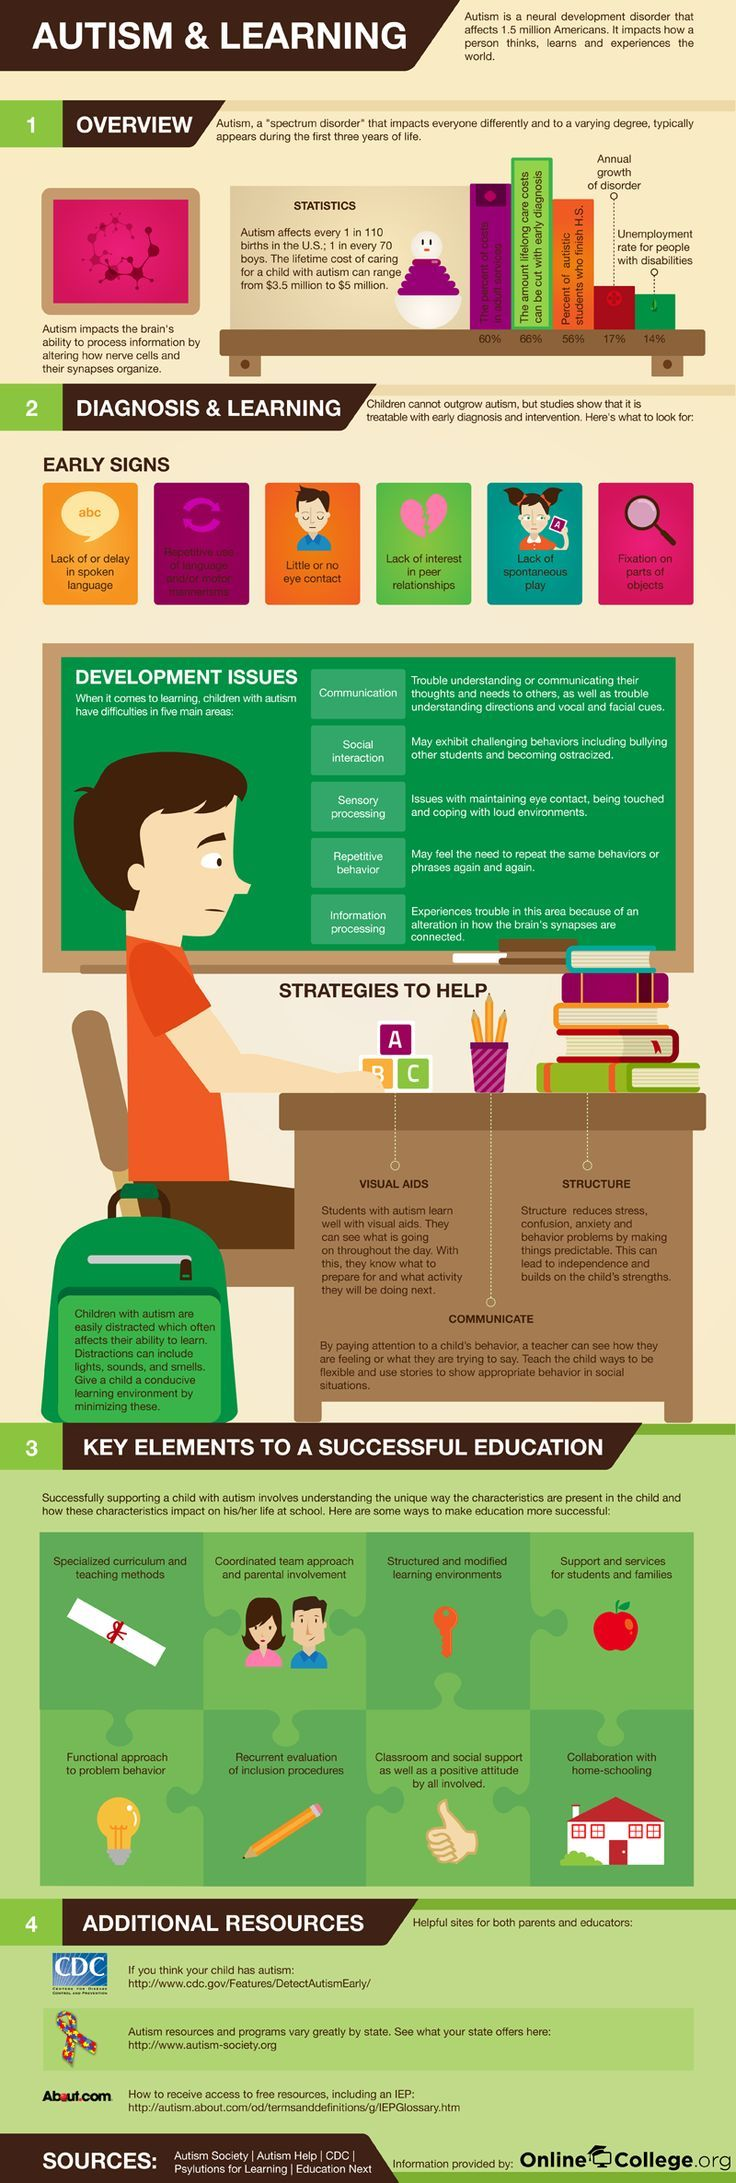 """""""What is autism and how does it affect a way a person learns? This infographic takes a look at autism and learning. It shows what obstacles people have when they're autistic and what ways they can facilitate their education."""" --visual.ly  #Autism #Learning #Awareness"""